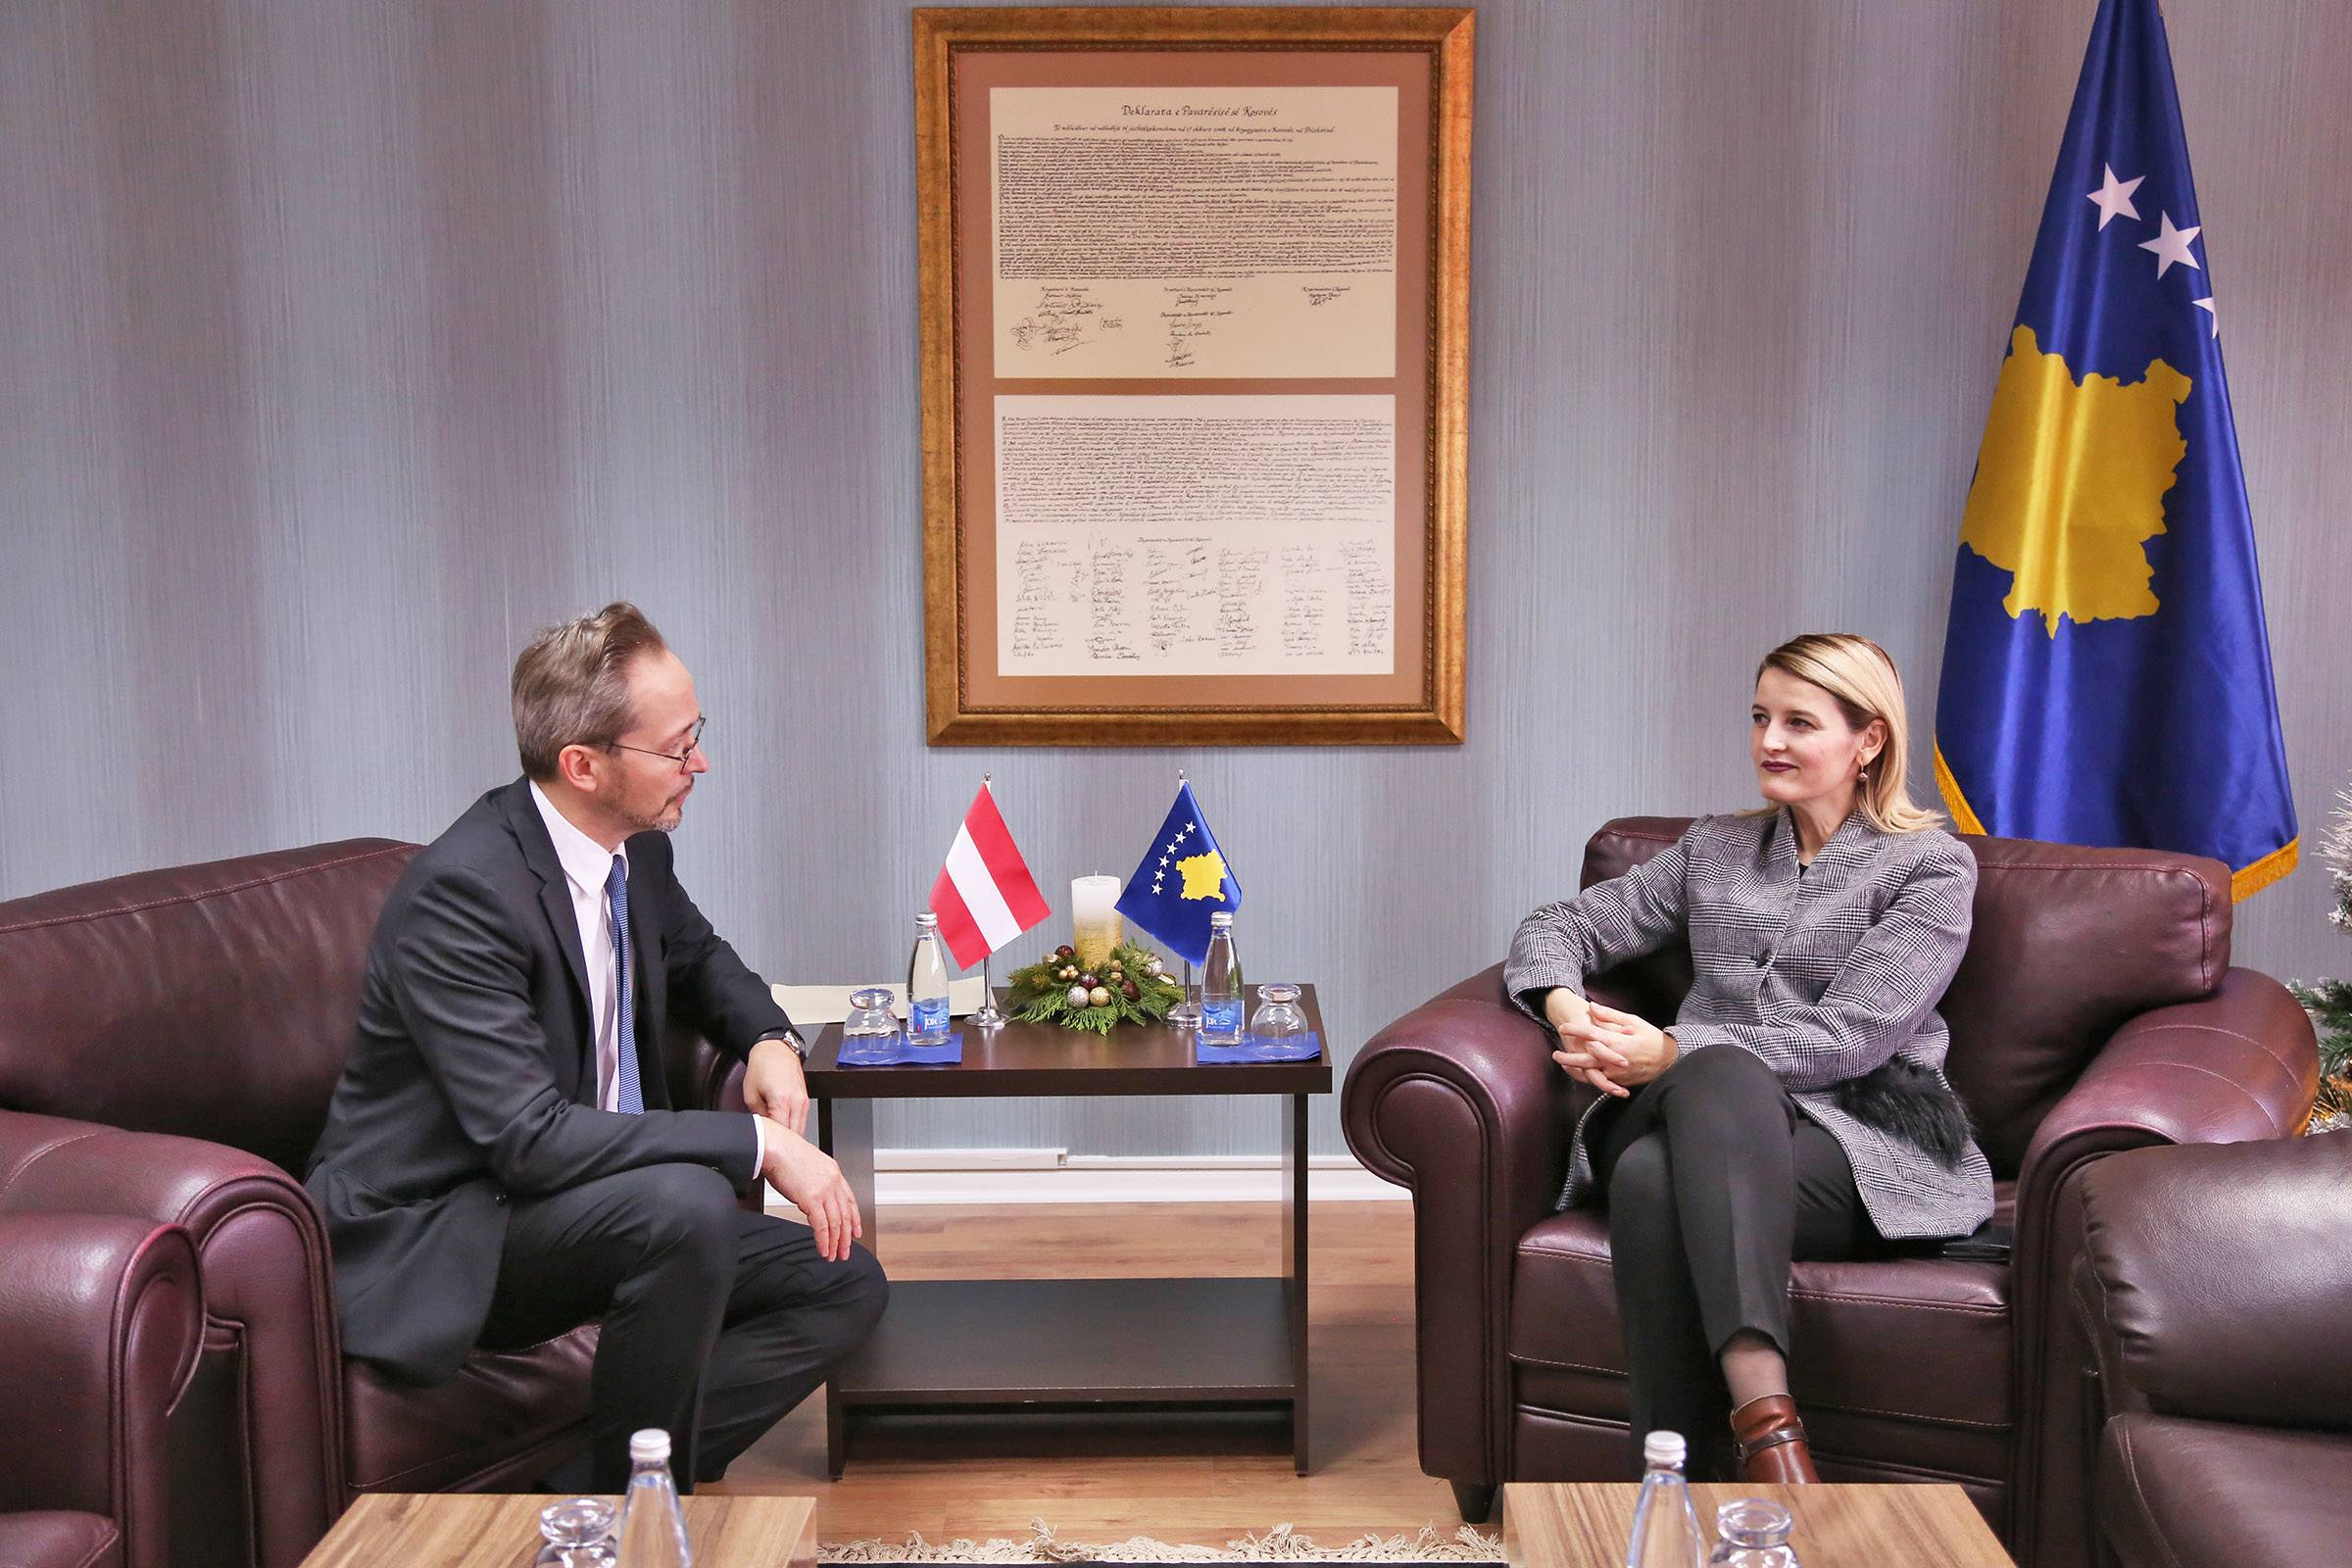 Minister Hoxha: Austria has been, is and remains a loyal ally of Kosovo